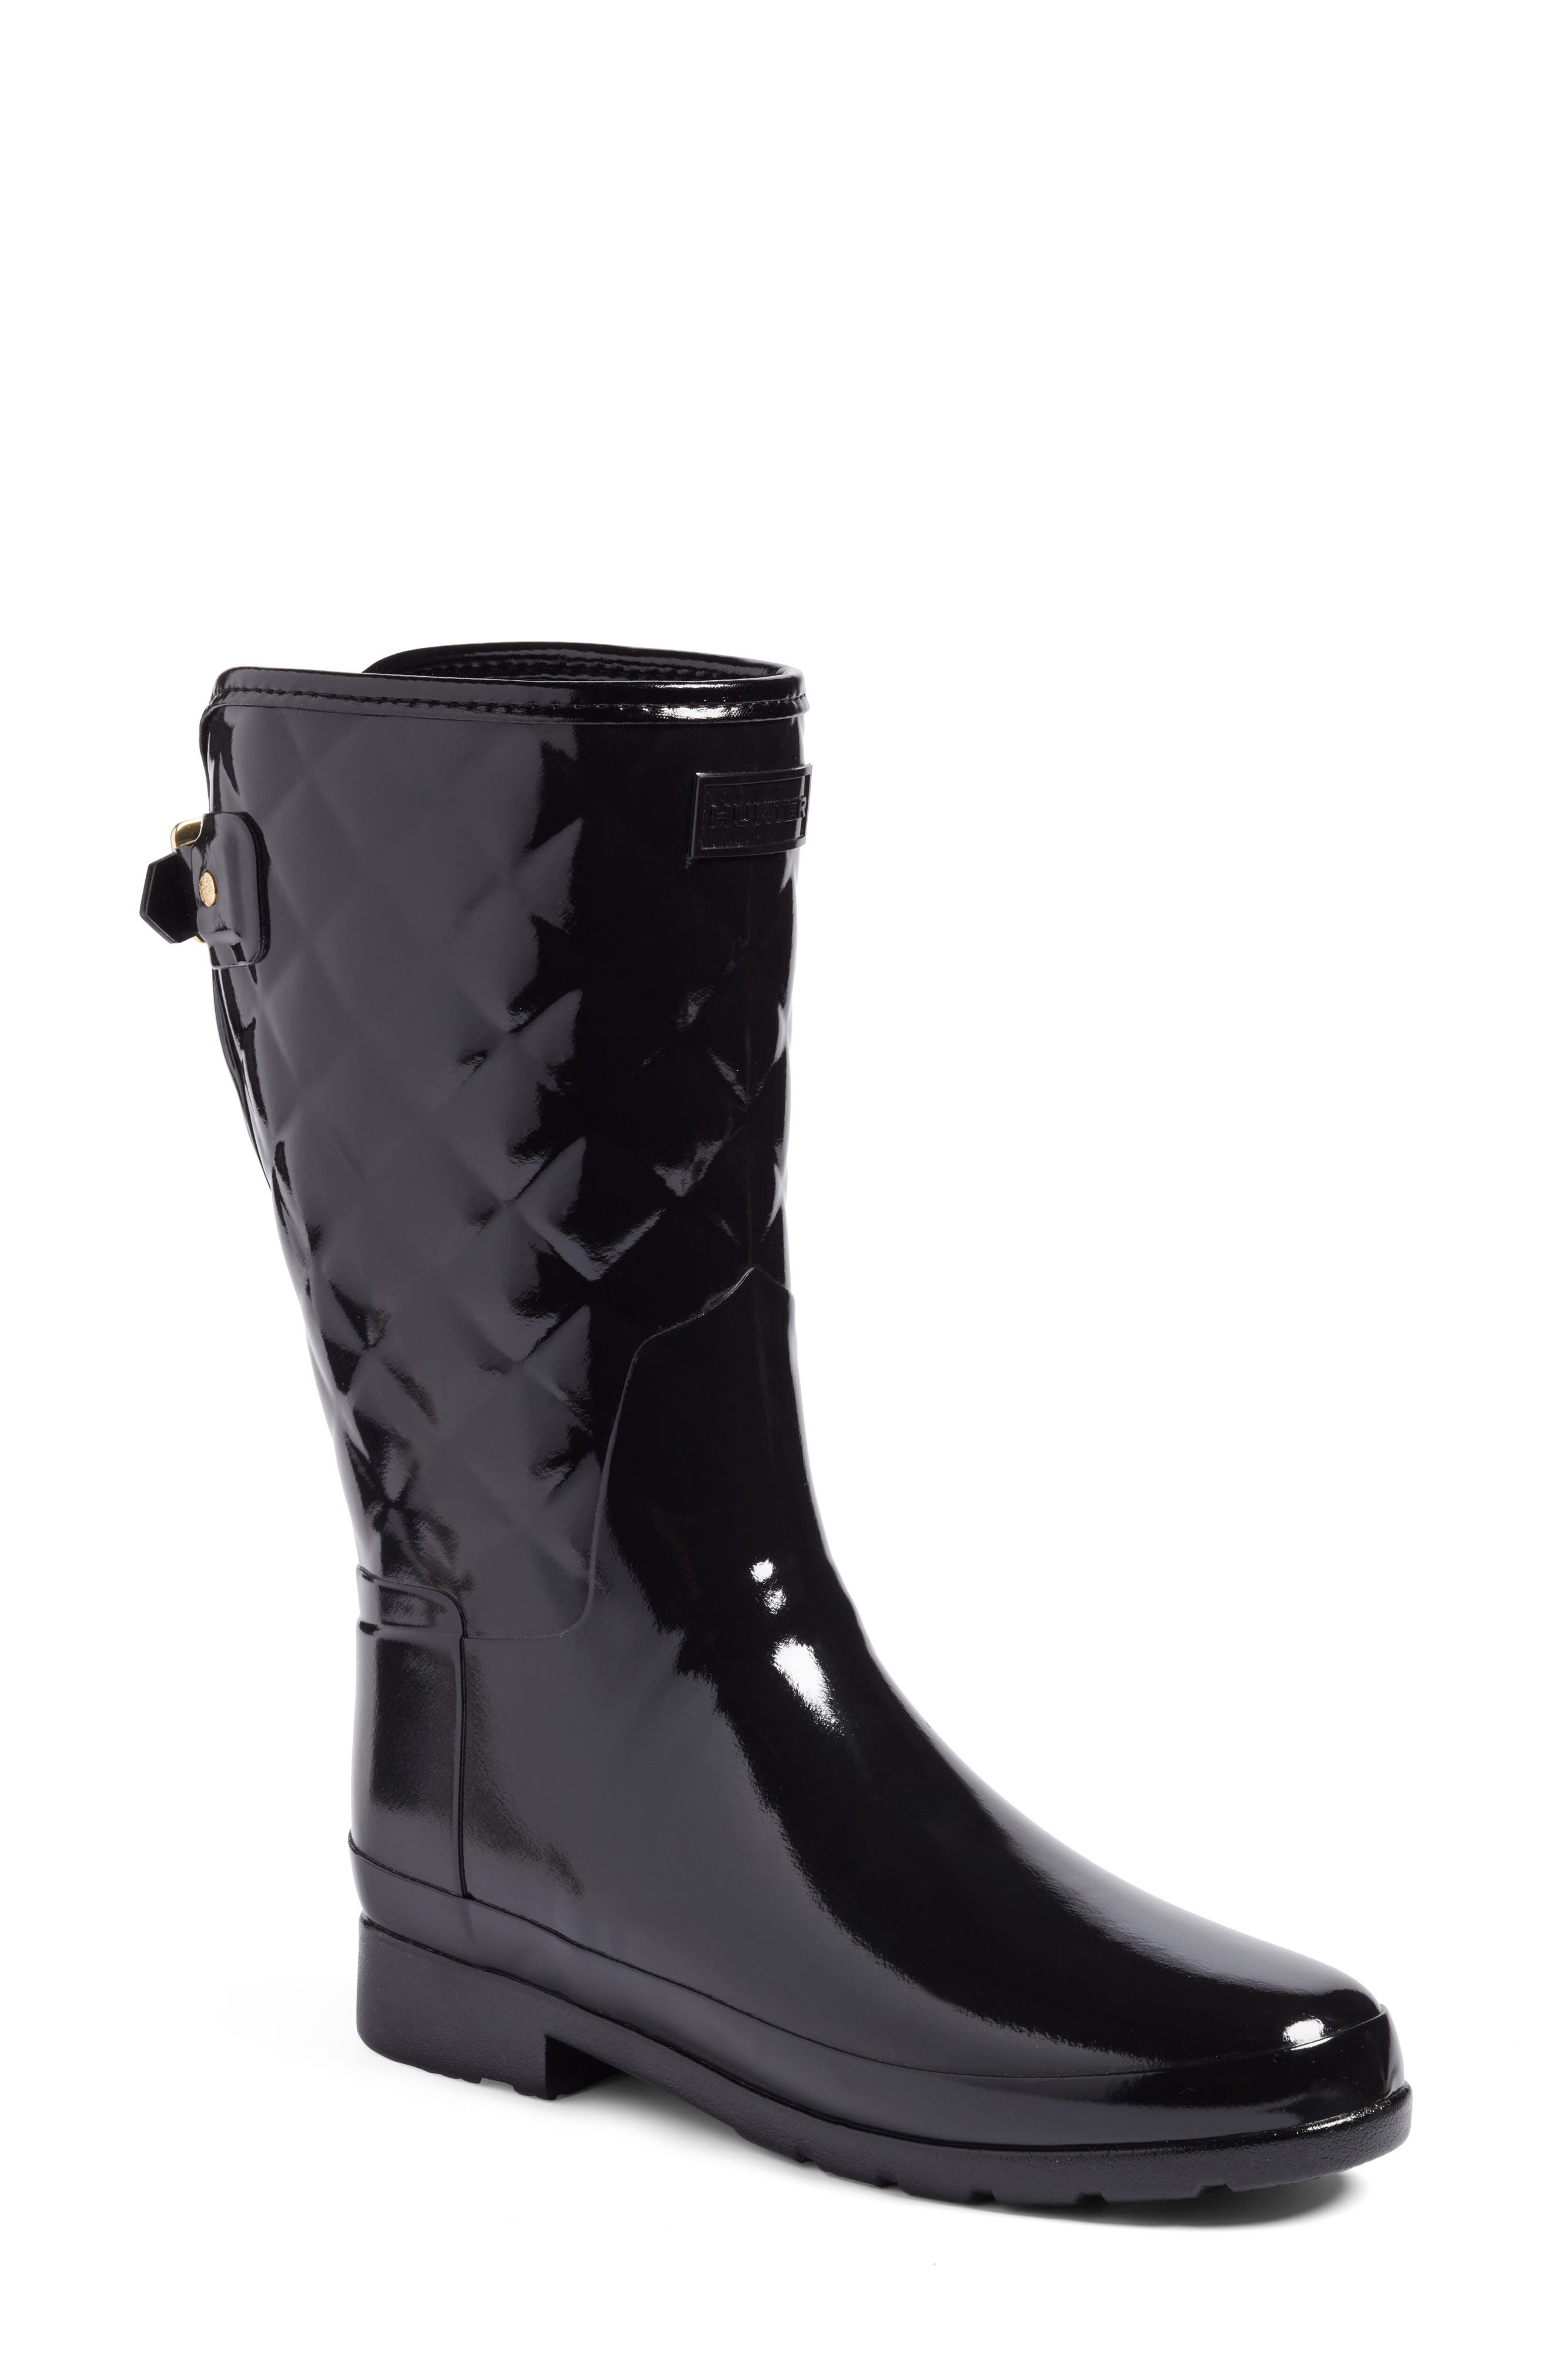 HUNTER, Refined High Gloss Quilted Short Waterproof Rain Boot, Main thumbnail 1, color, BLACK